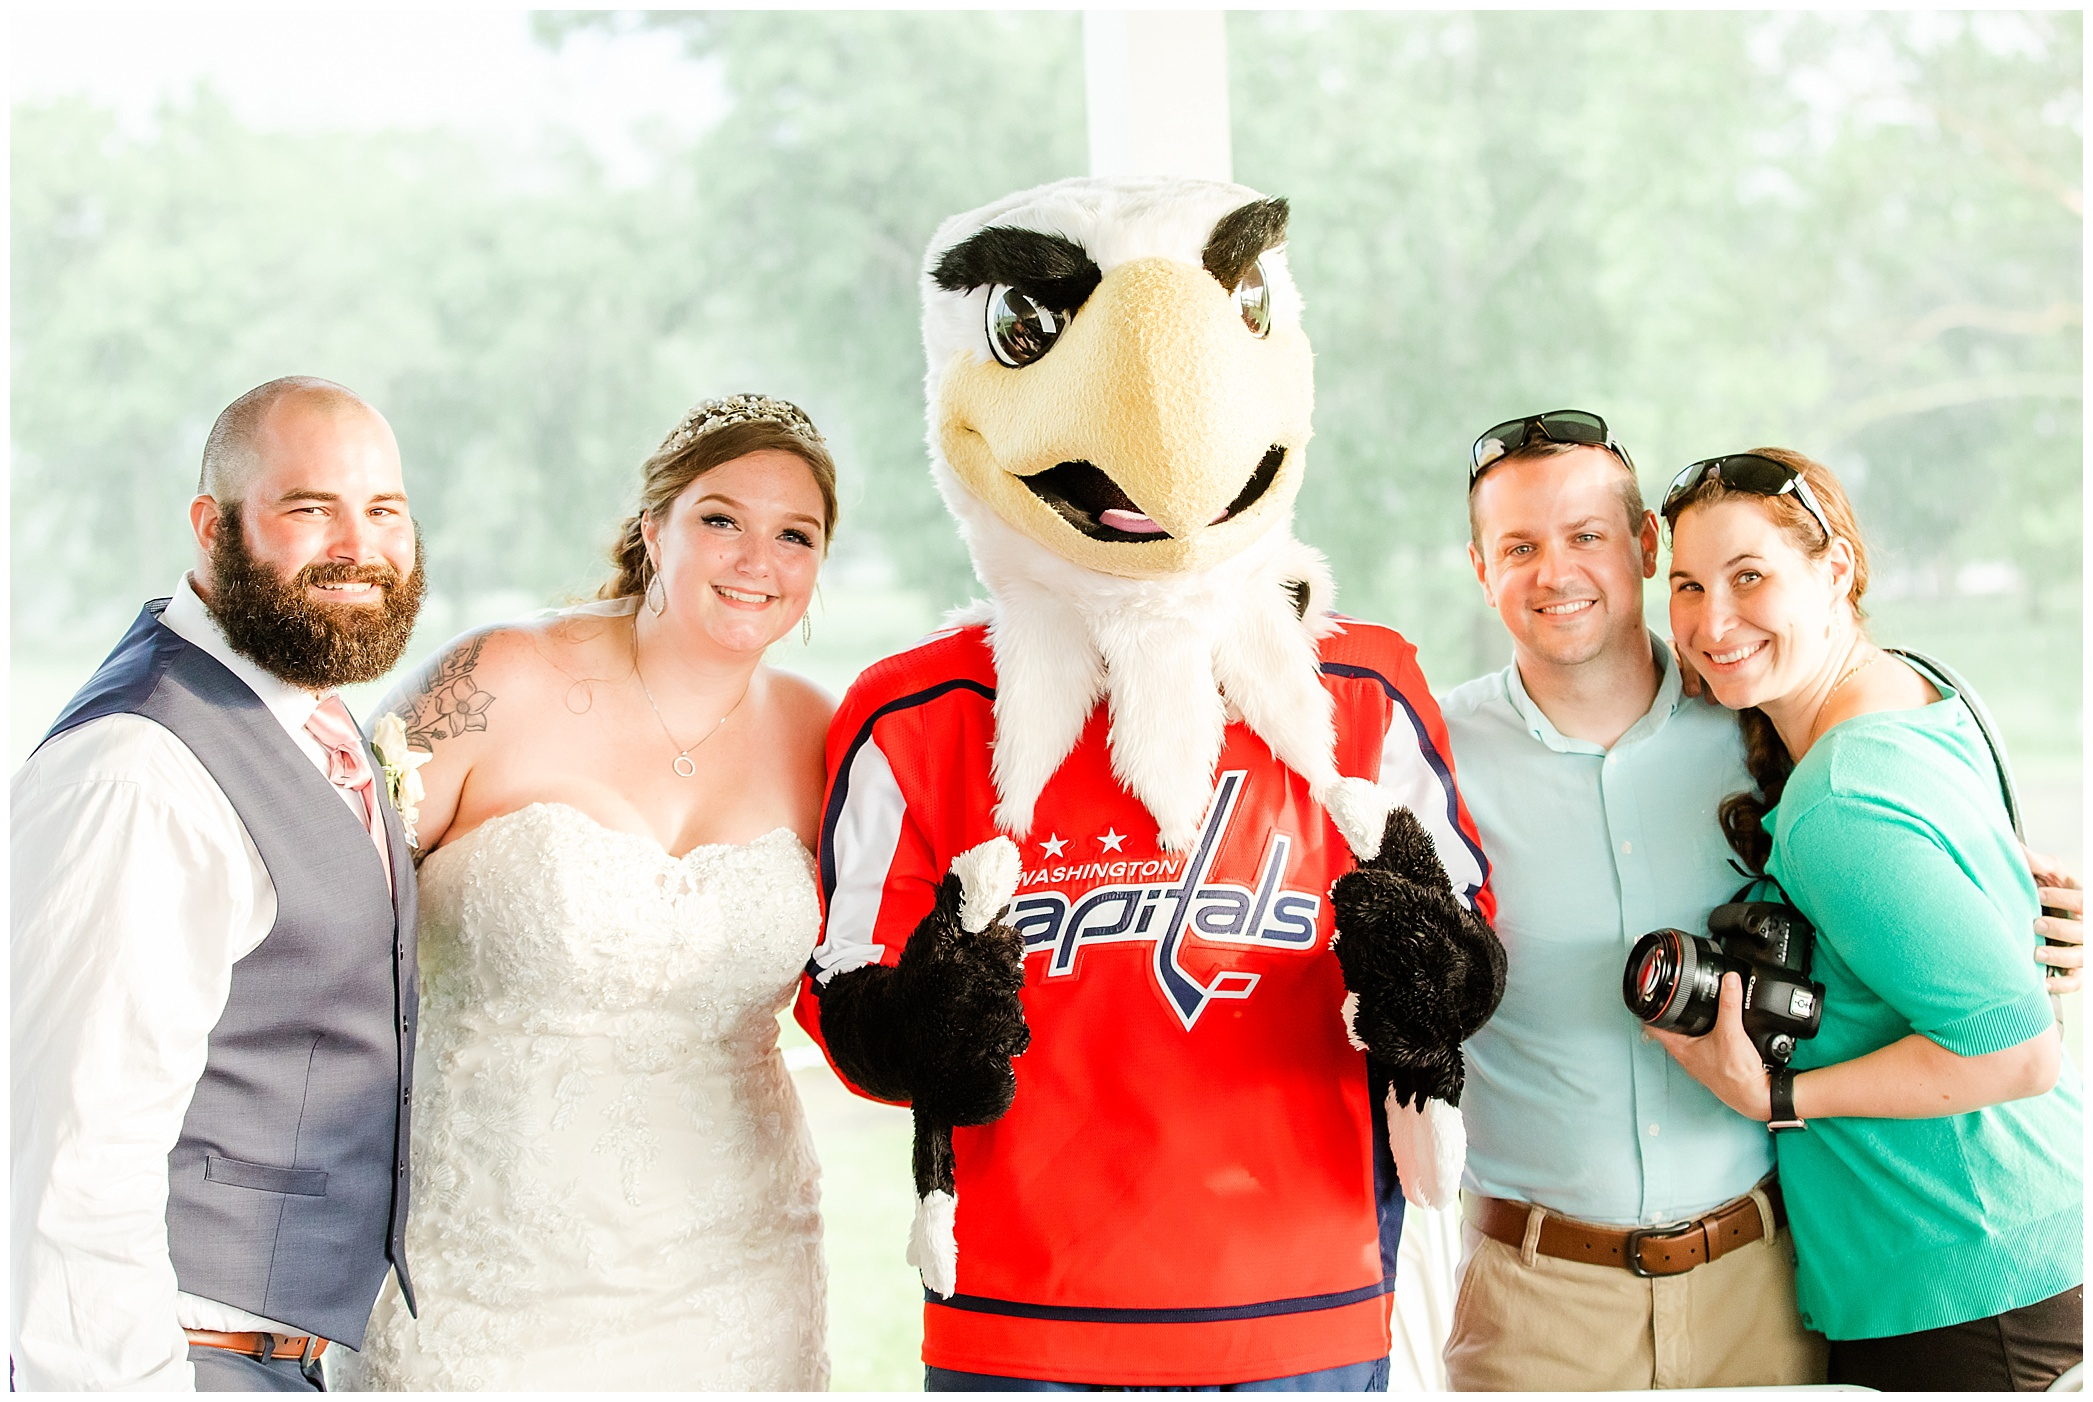 Hunter is a huge Capitals fan too! We had to get a group picture with Slapshot!